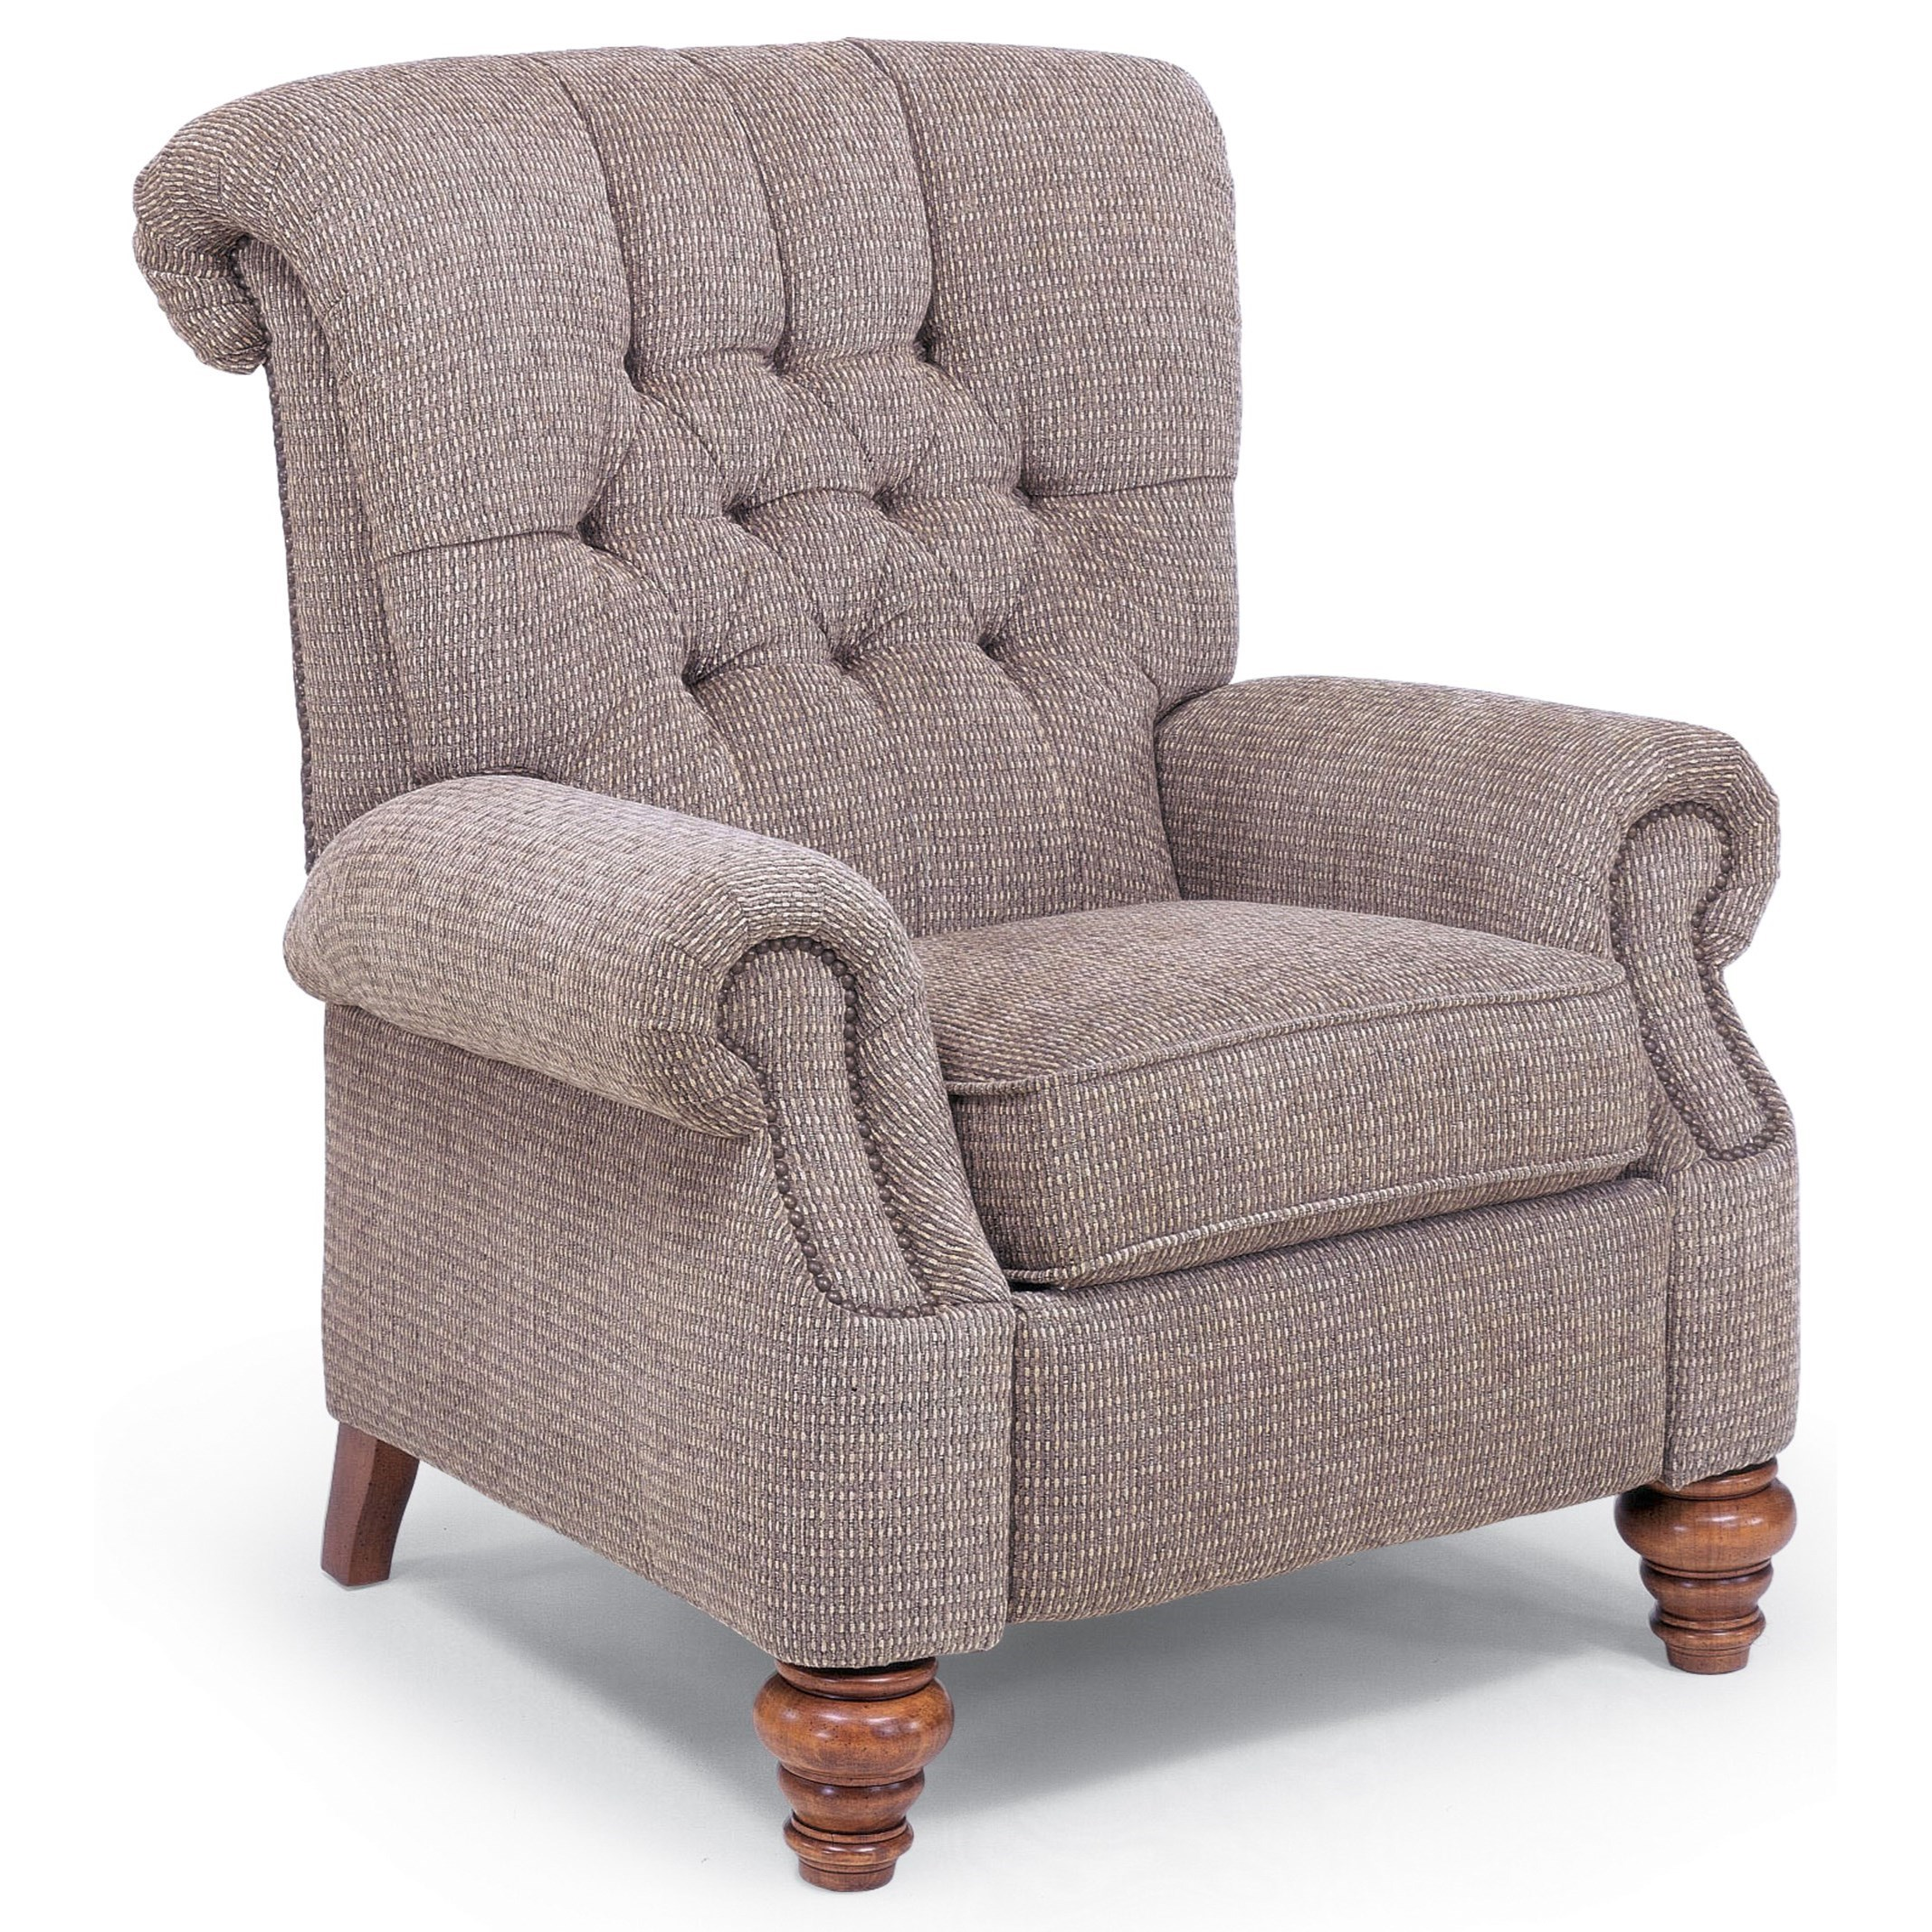 Accents Power High-Leg Recliner by Flexsteel at Fisher Home Furnishings